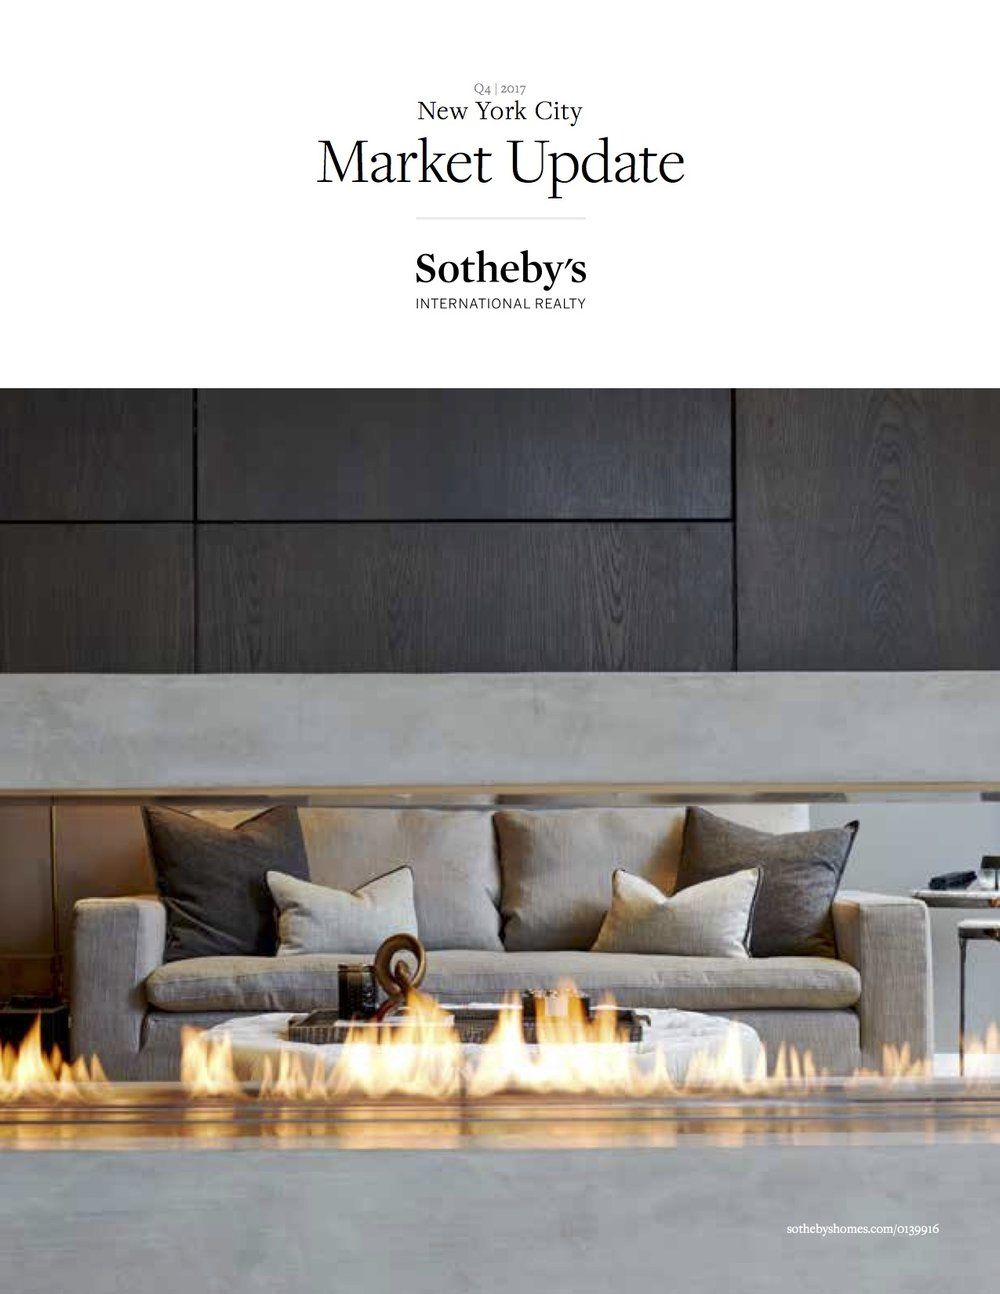 Sotheby's Internation Realty NYC MARKET REPORT_Q4_2017_1.jpg